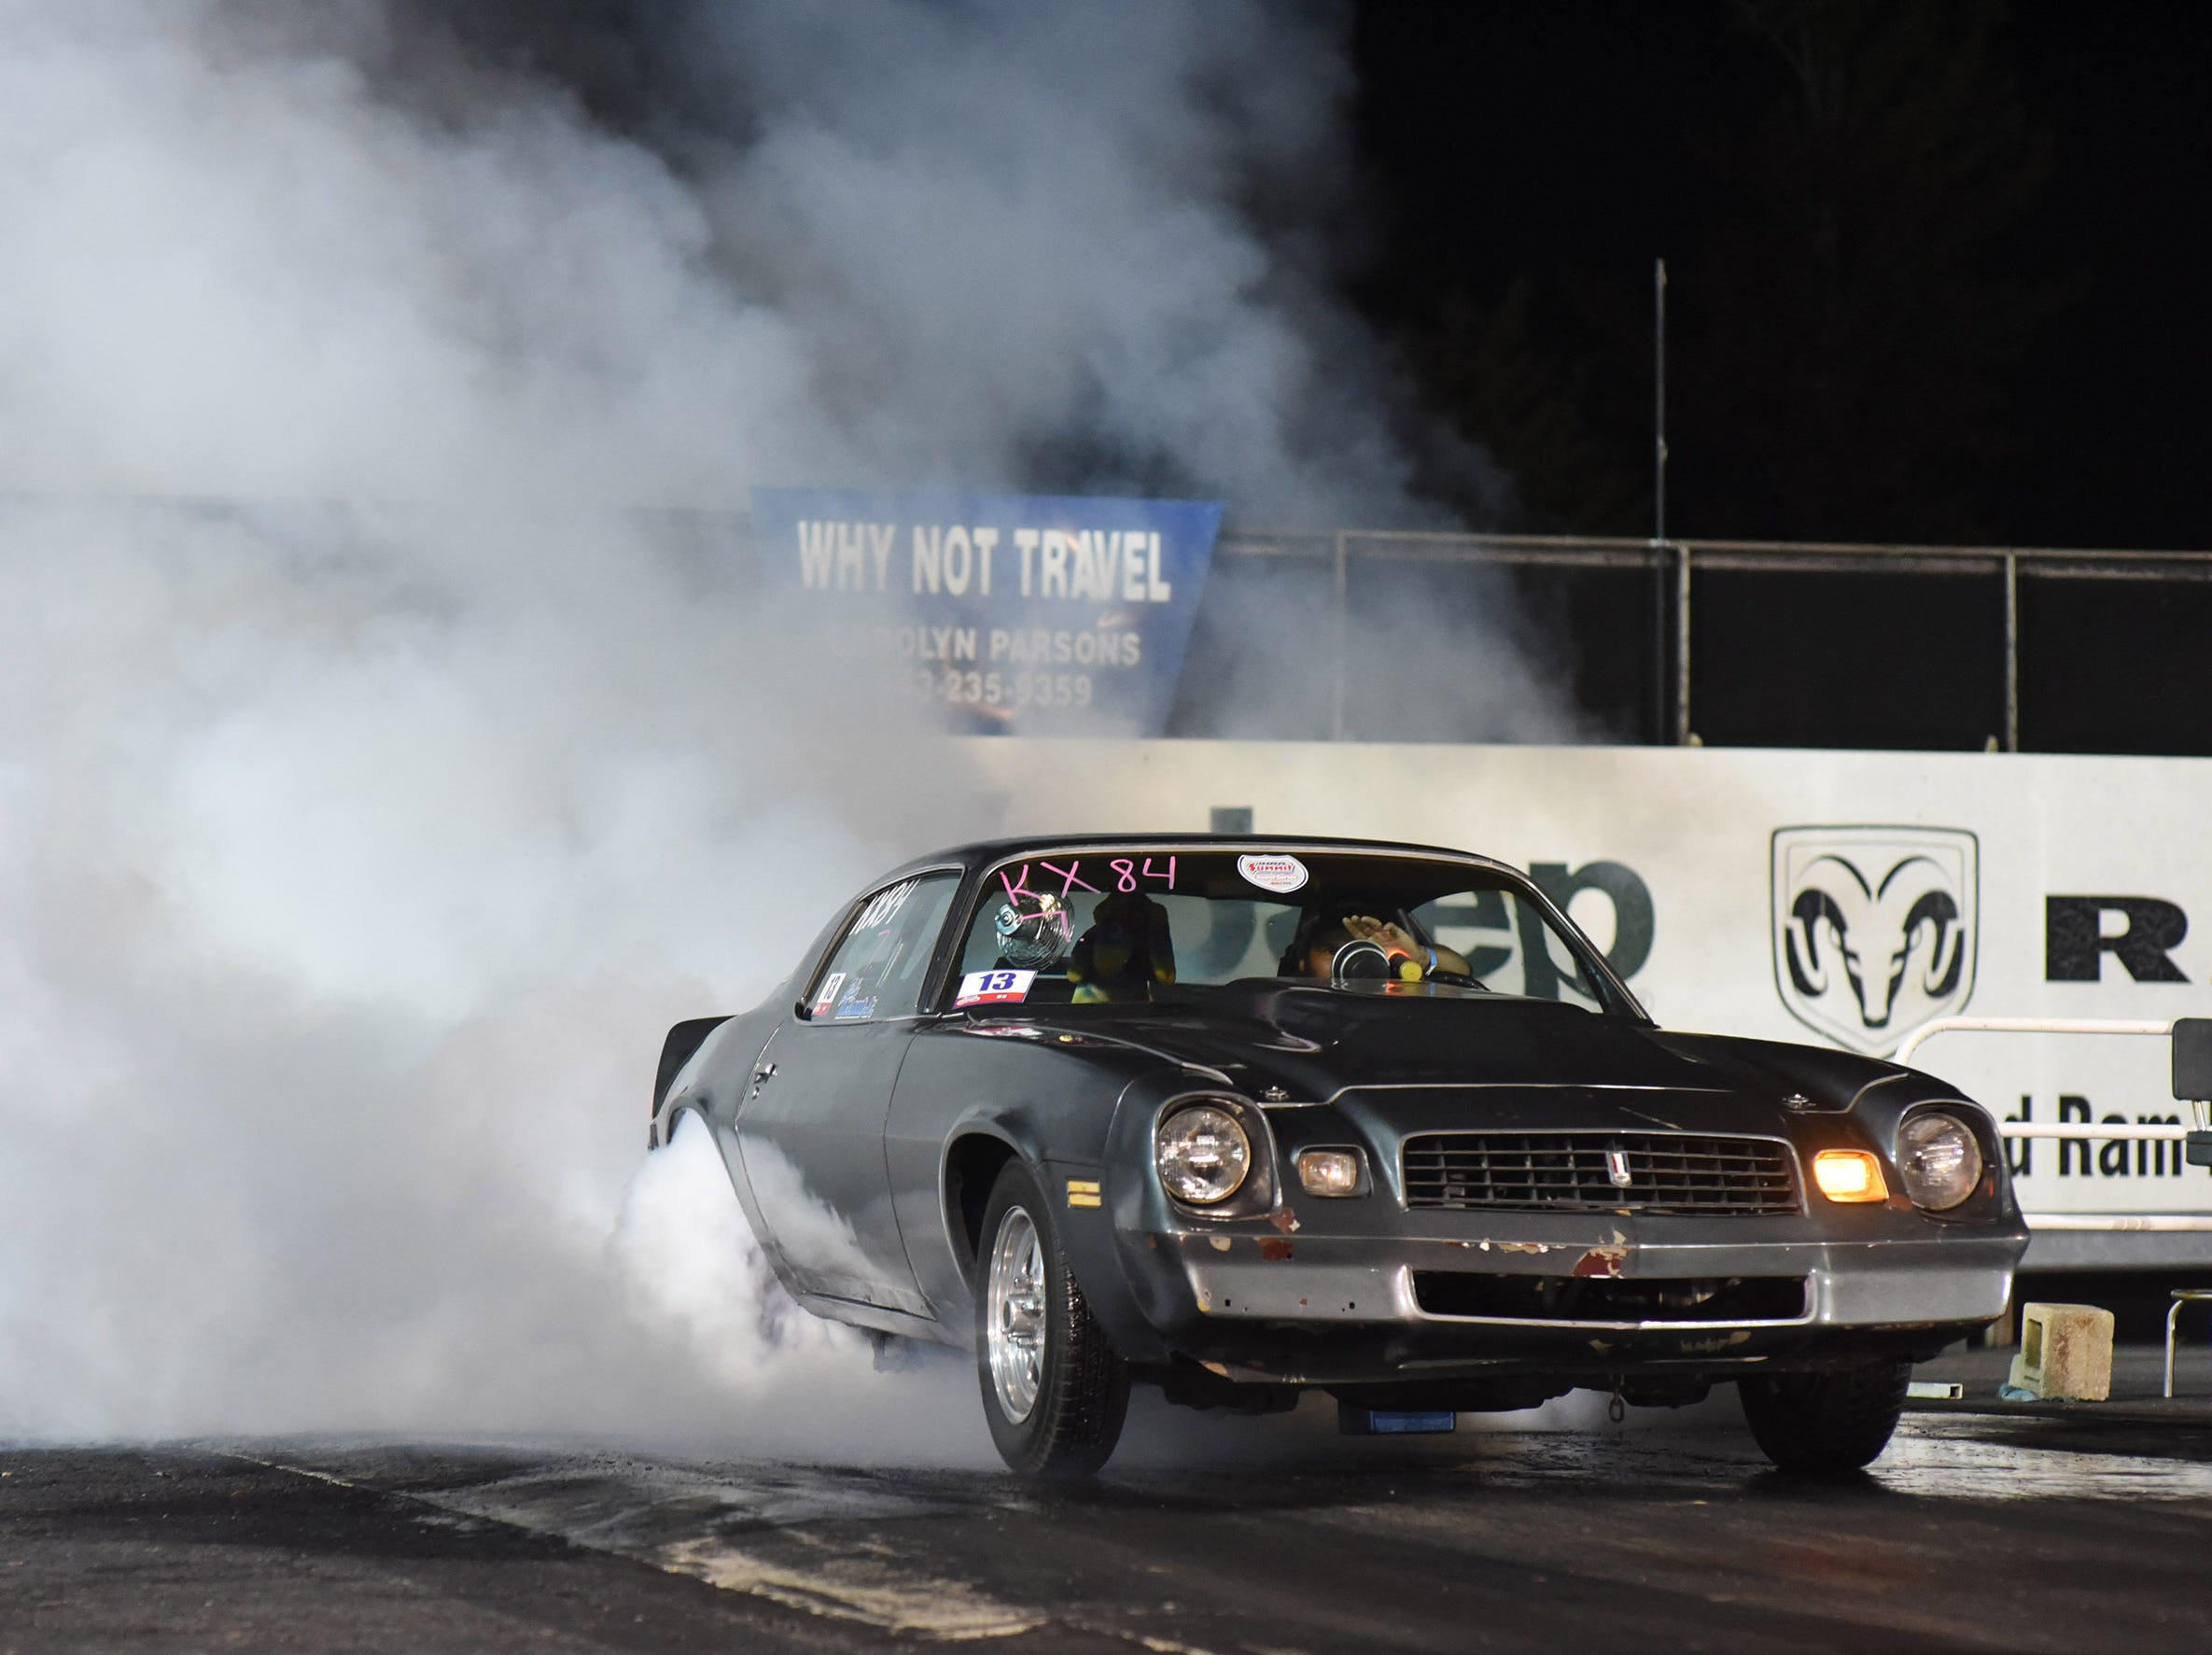 Billy McLamb competes in the first Endless Summer Cruisin' 2018 Burnout Contest at the U.S. 13 Dragway in Delmar. McLamb of Mardela Springs was the winner of the contest and $500 sponsored by Special Event Productions Inc. (Photo by Todd Dudek for The Daily Times)